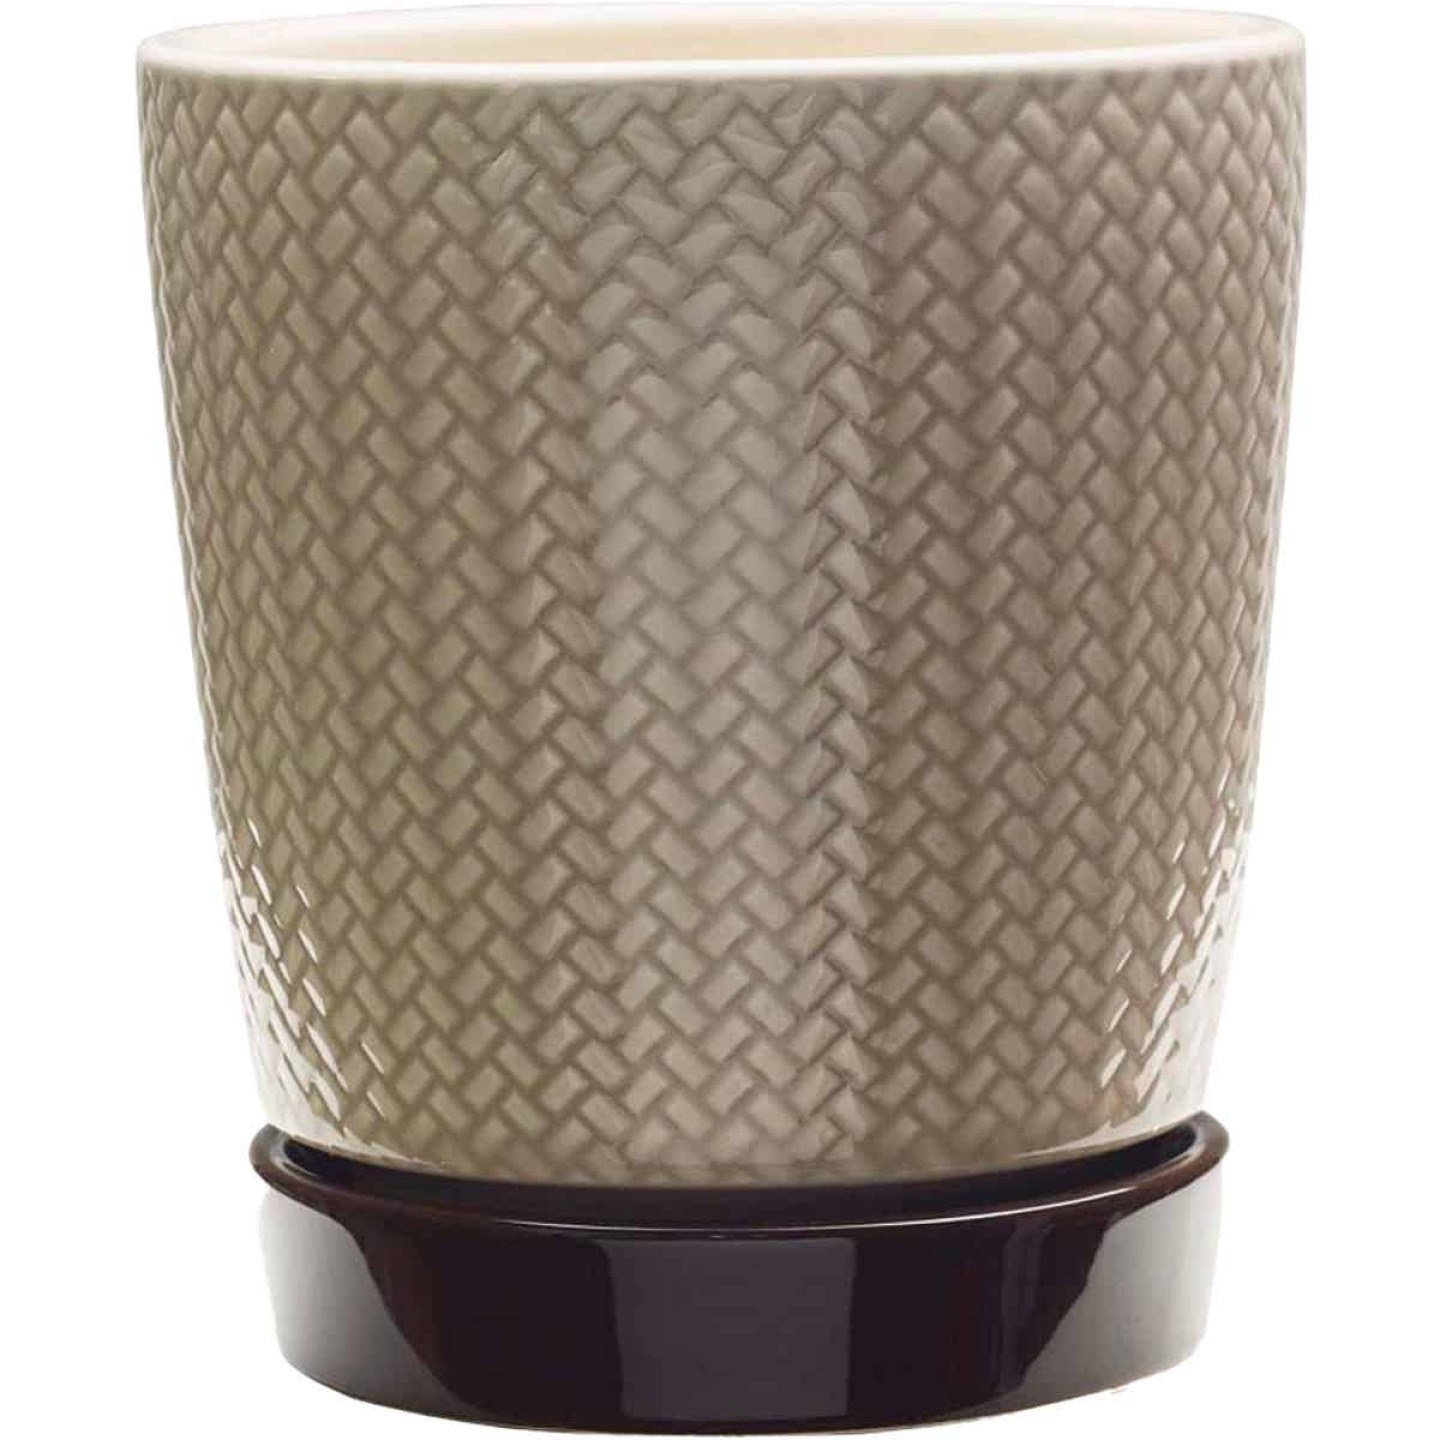 Southern Patio Alice 8.5 In. Ceramic Clayworks Light Brown Planter Image 1